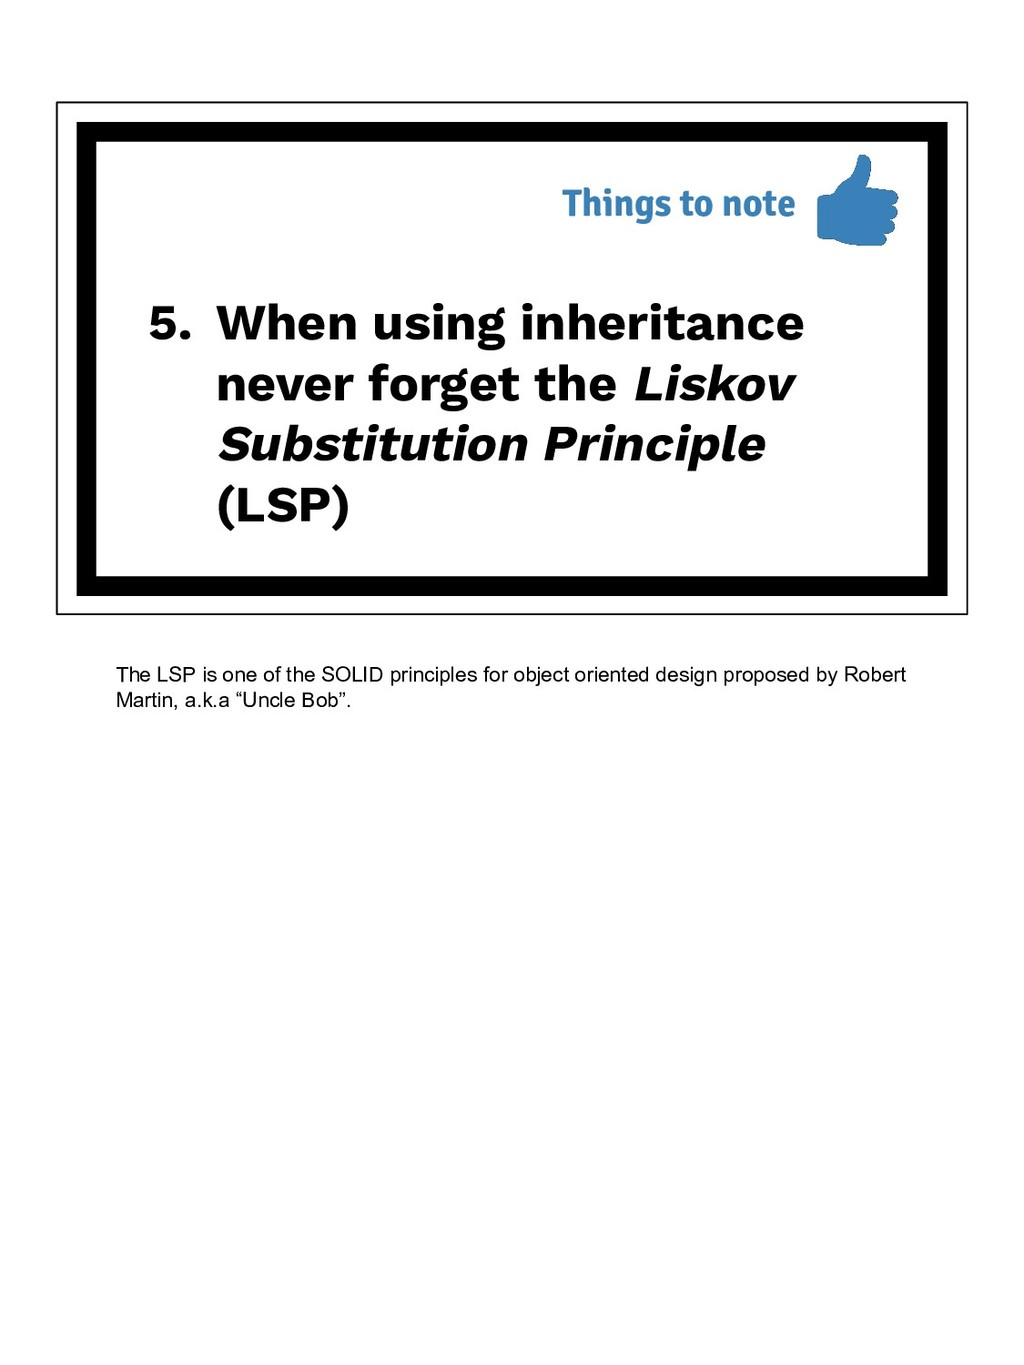 5. When using inheritance never forget the Lisk...